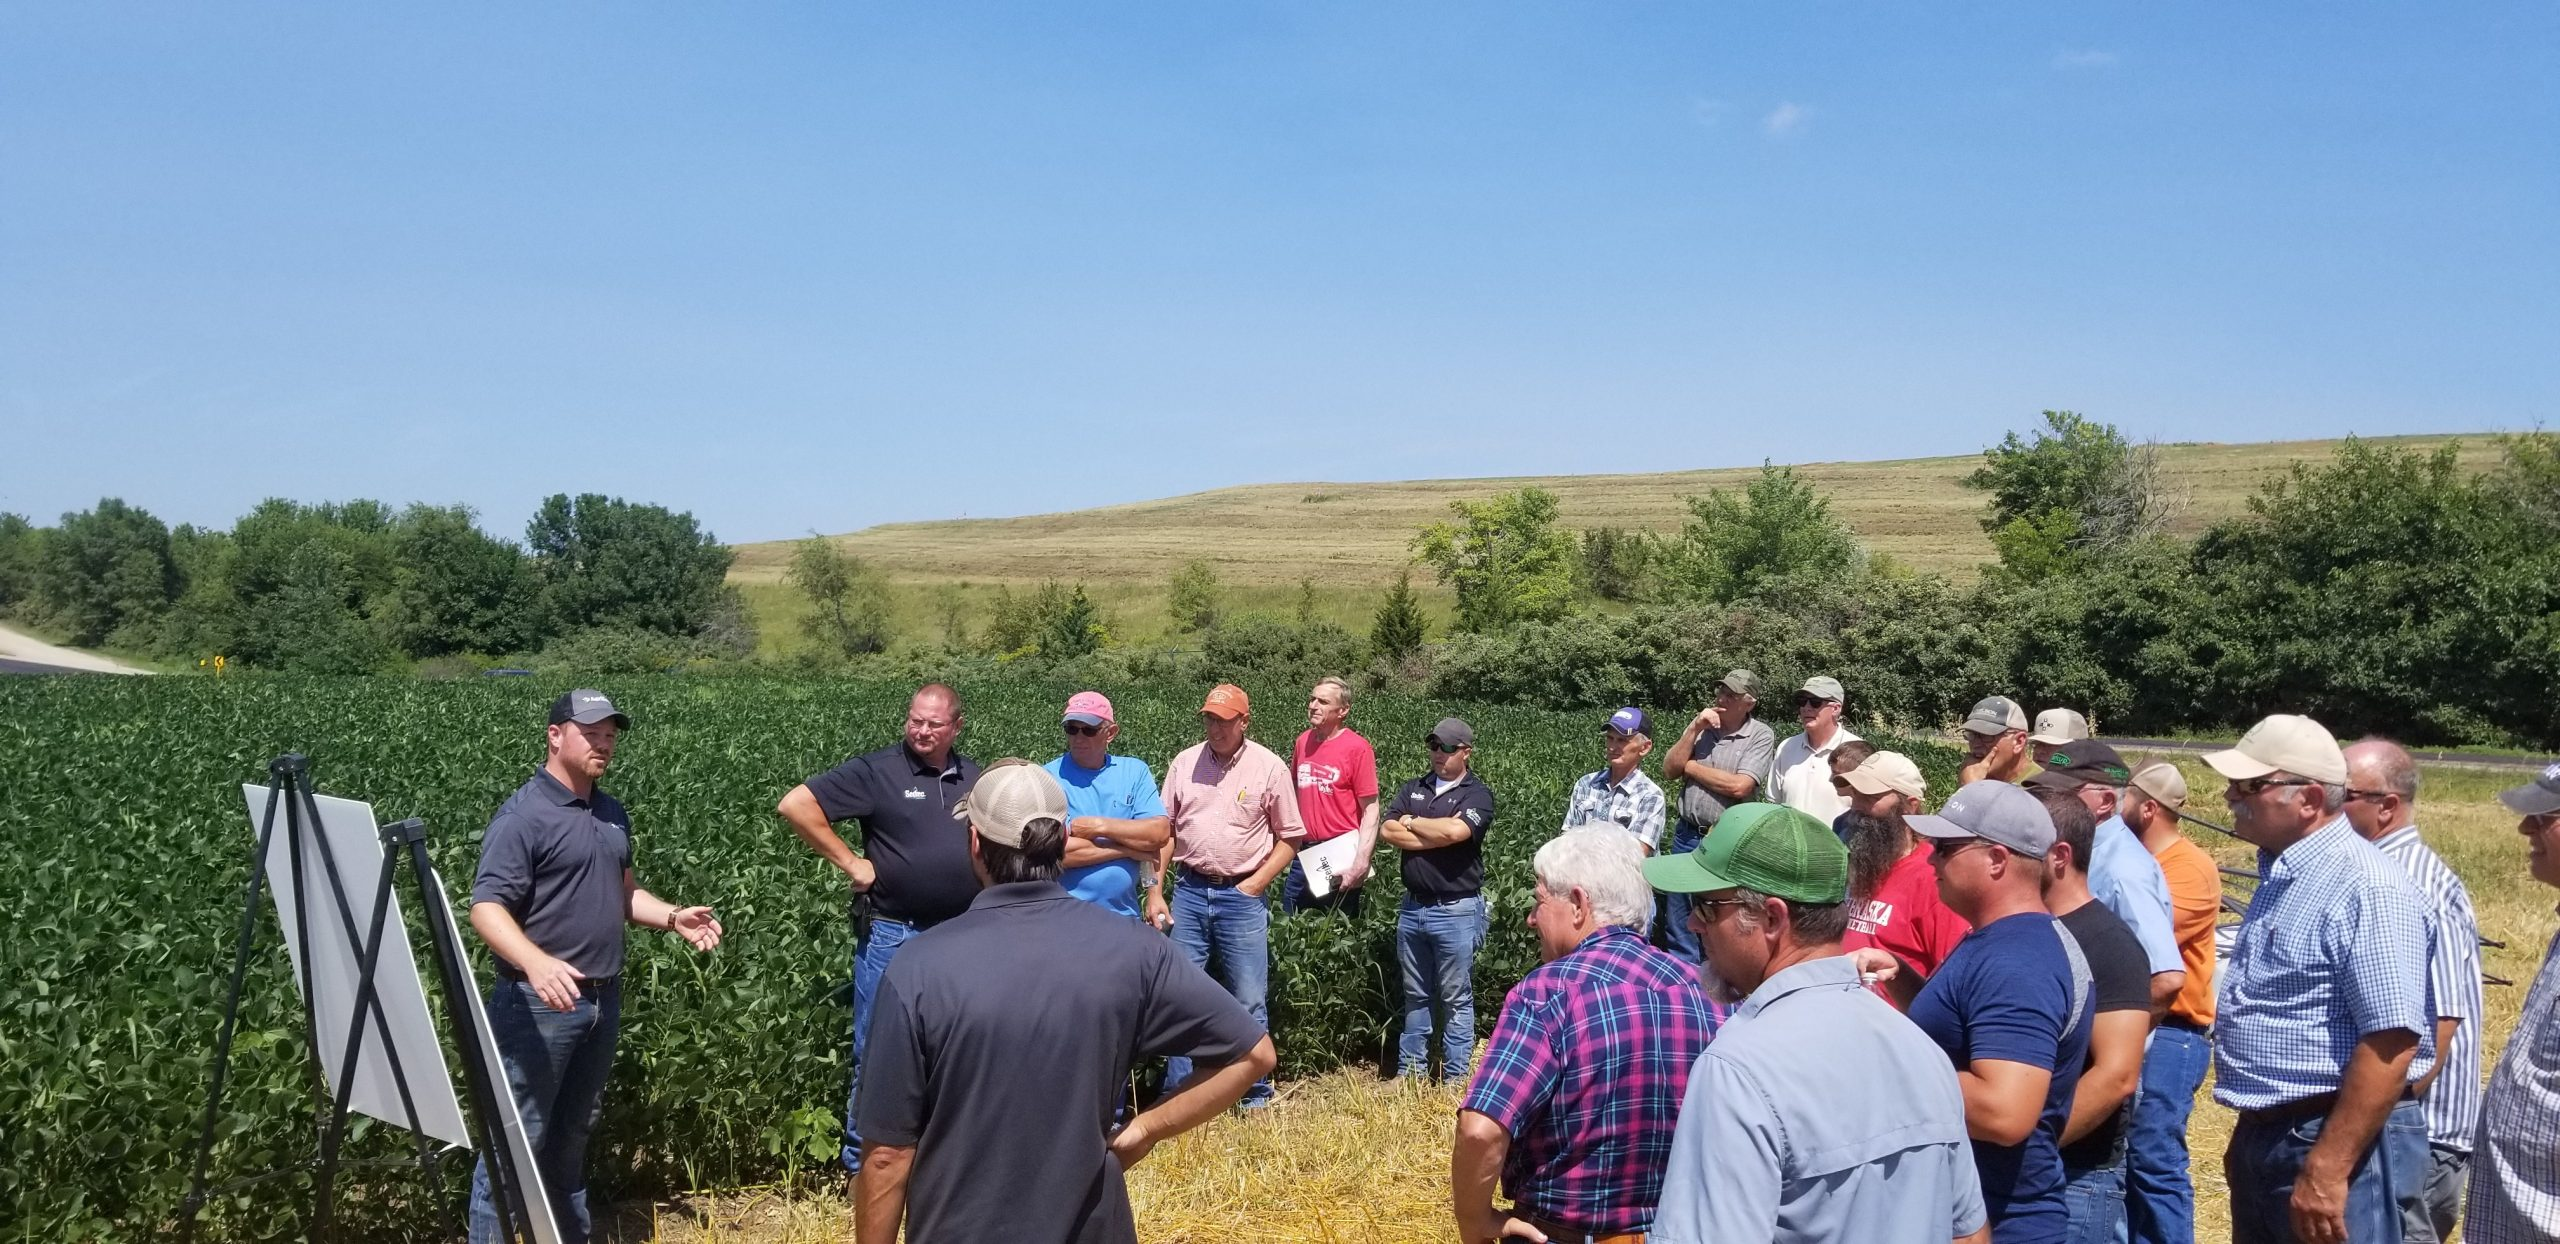 AgriSecure founder Bryce Irlbeck speaks to farmers at an organic field day